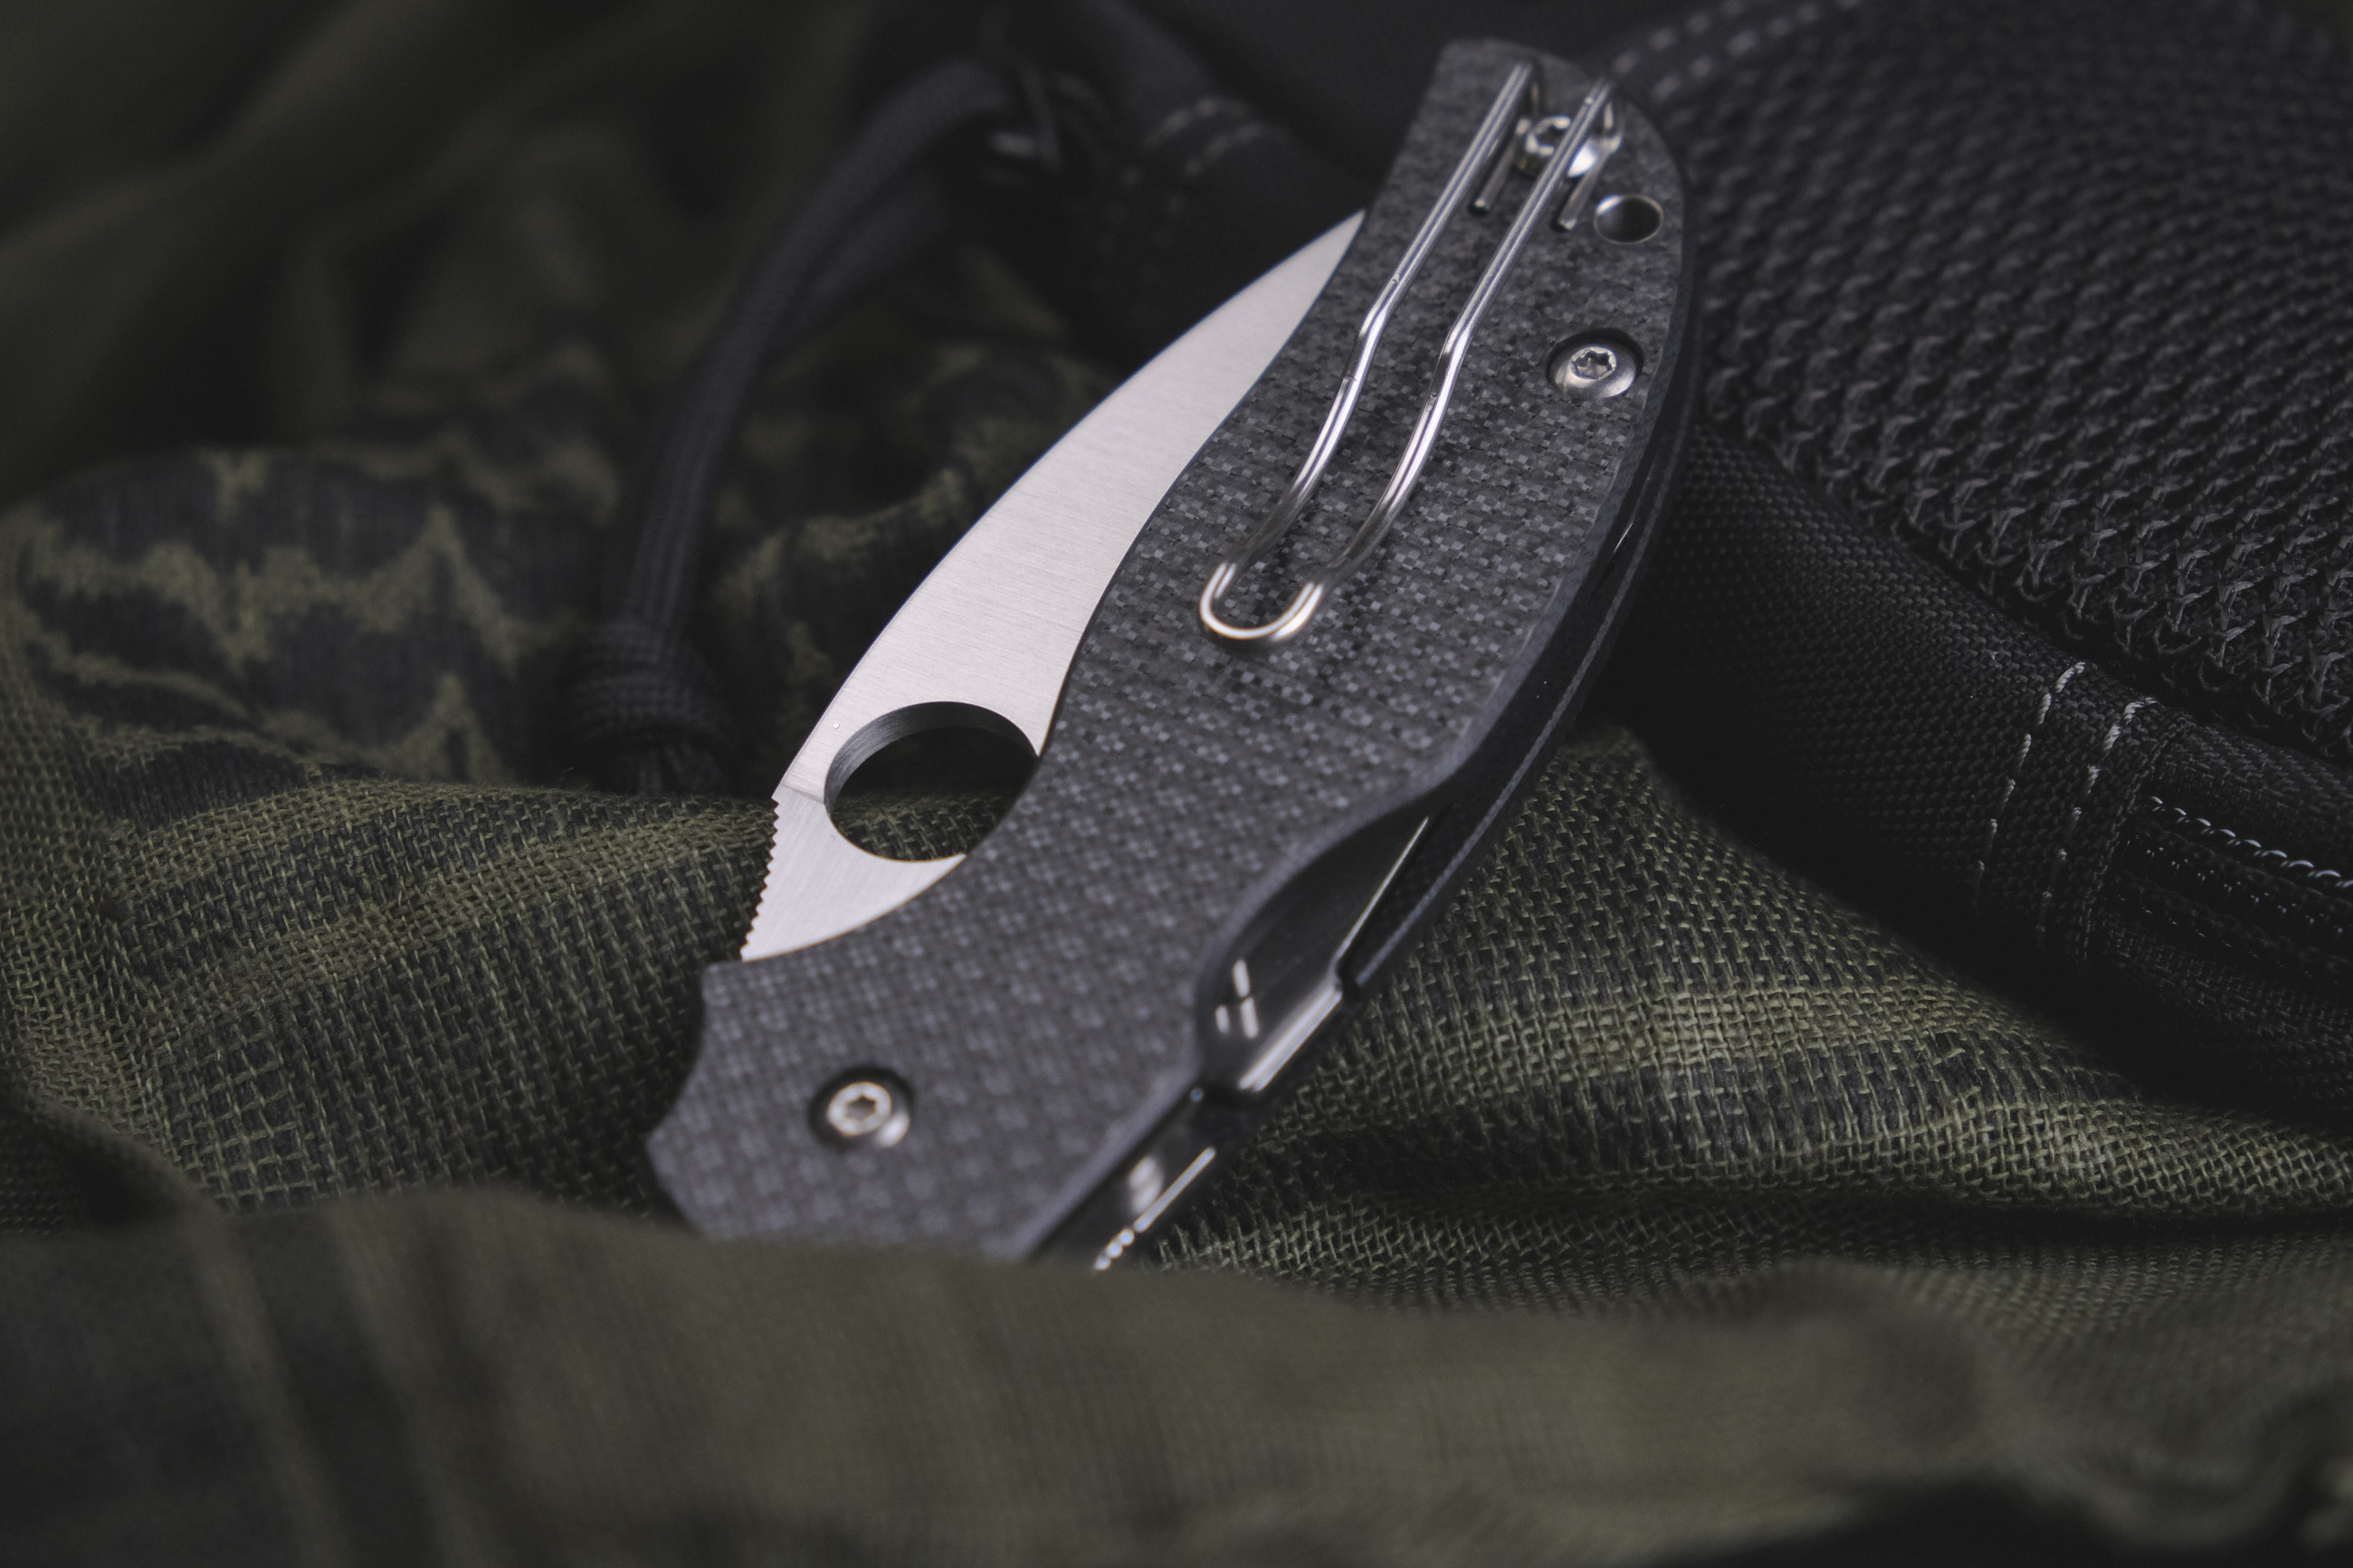 Spyderco Sage 5 Review • Is this the BEST EDC KNIFE?